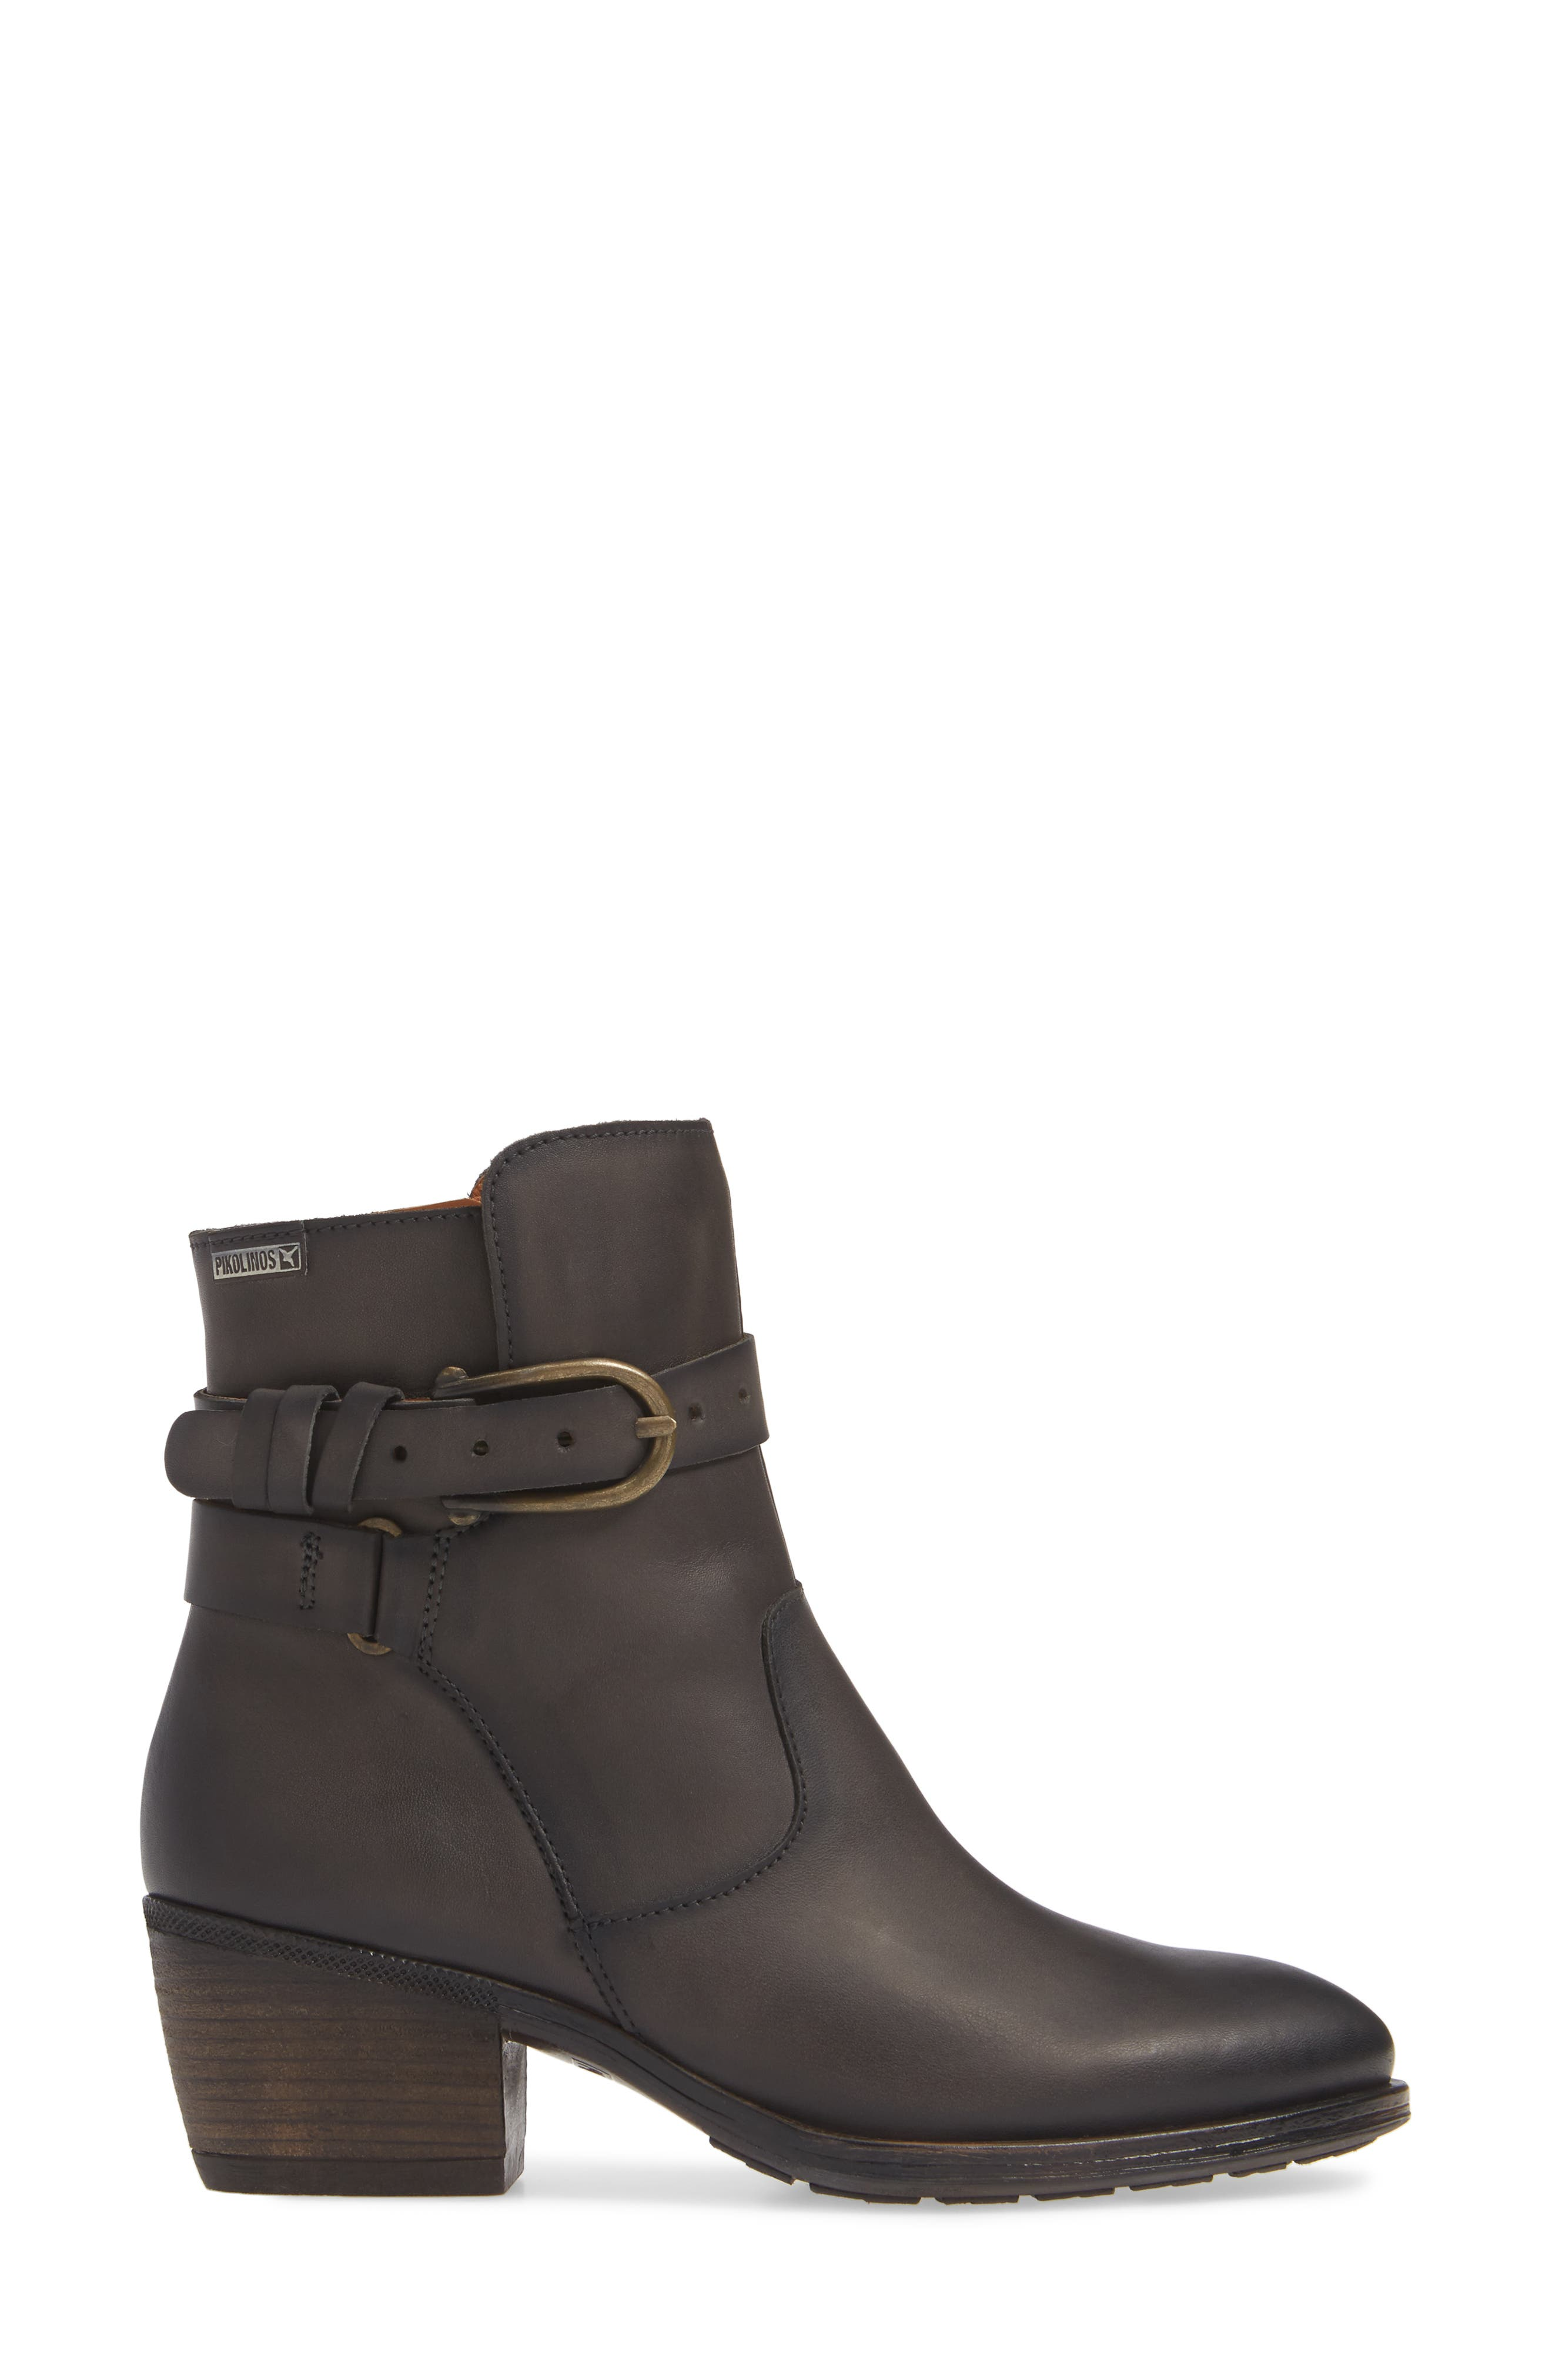 Baqueira Bootie,                             Alternate thumbnail 3, color,                             LEAD LEATHER